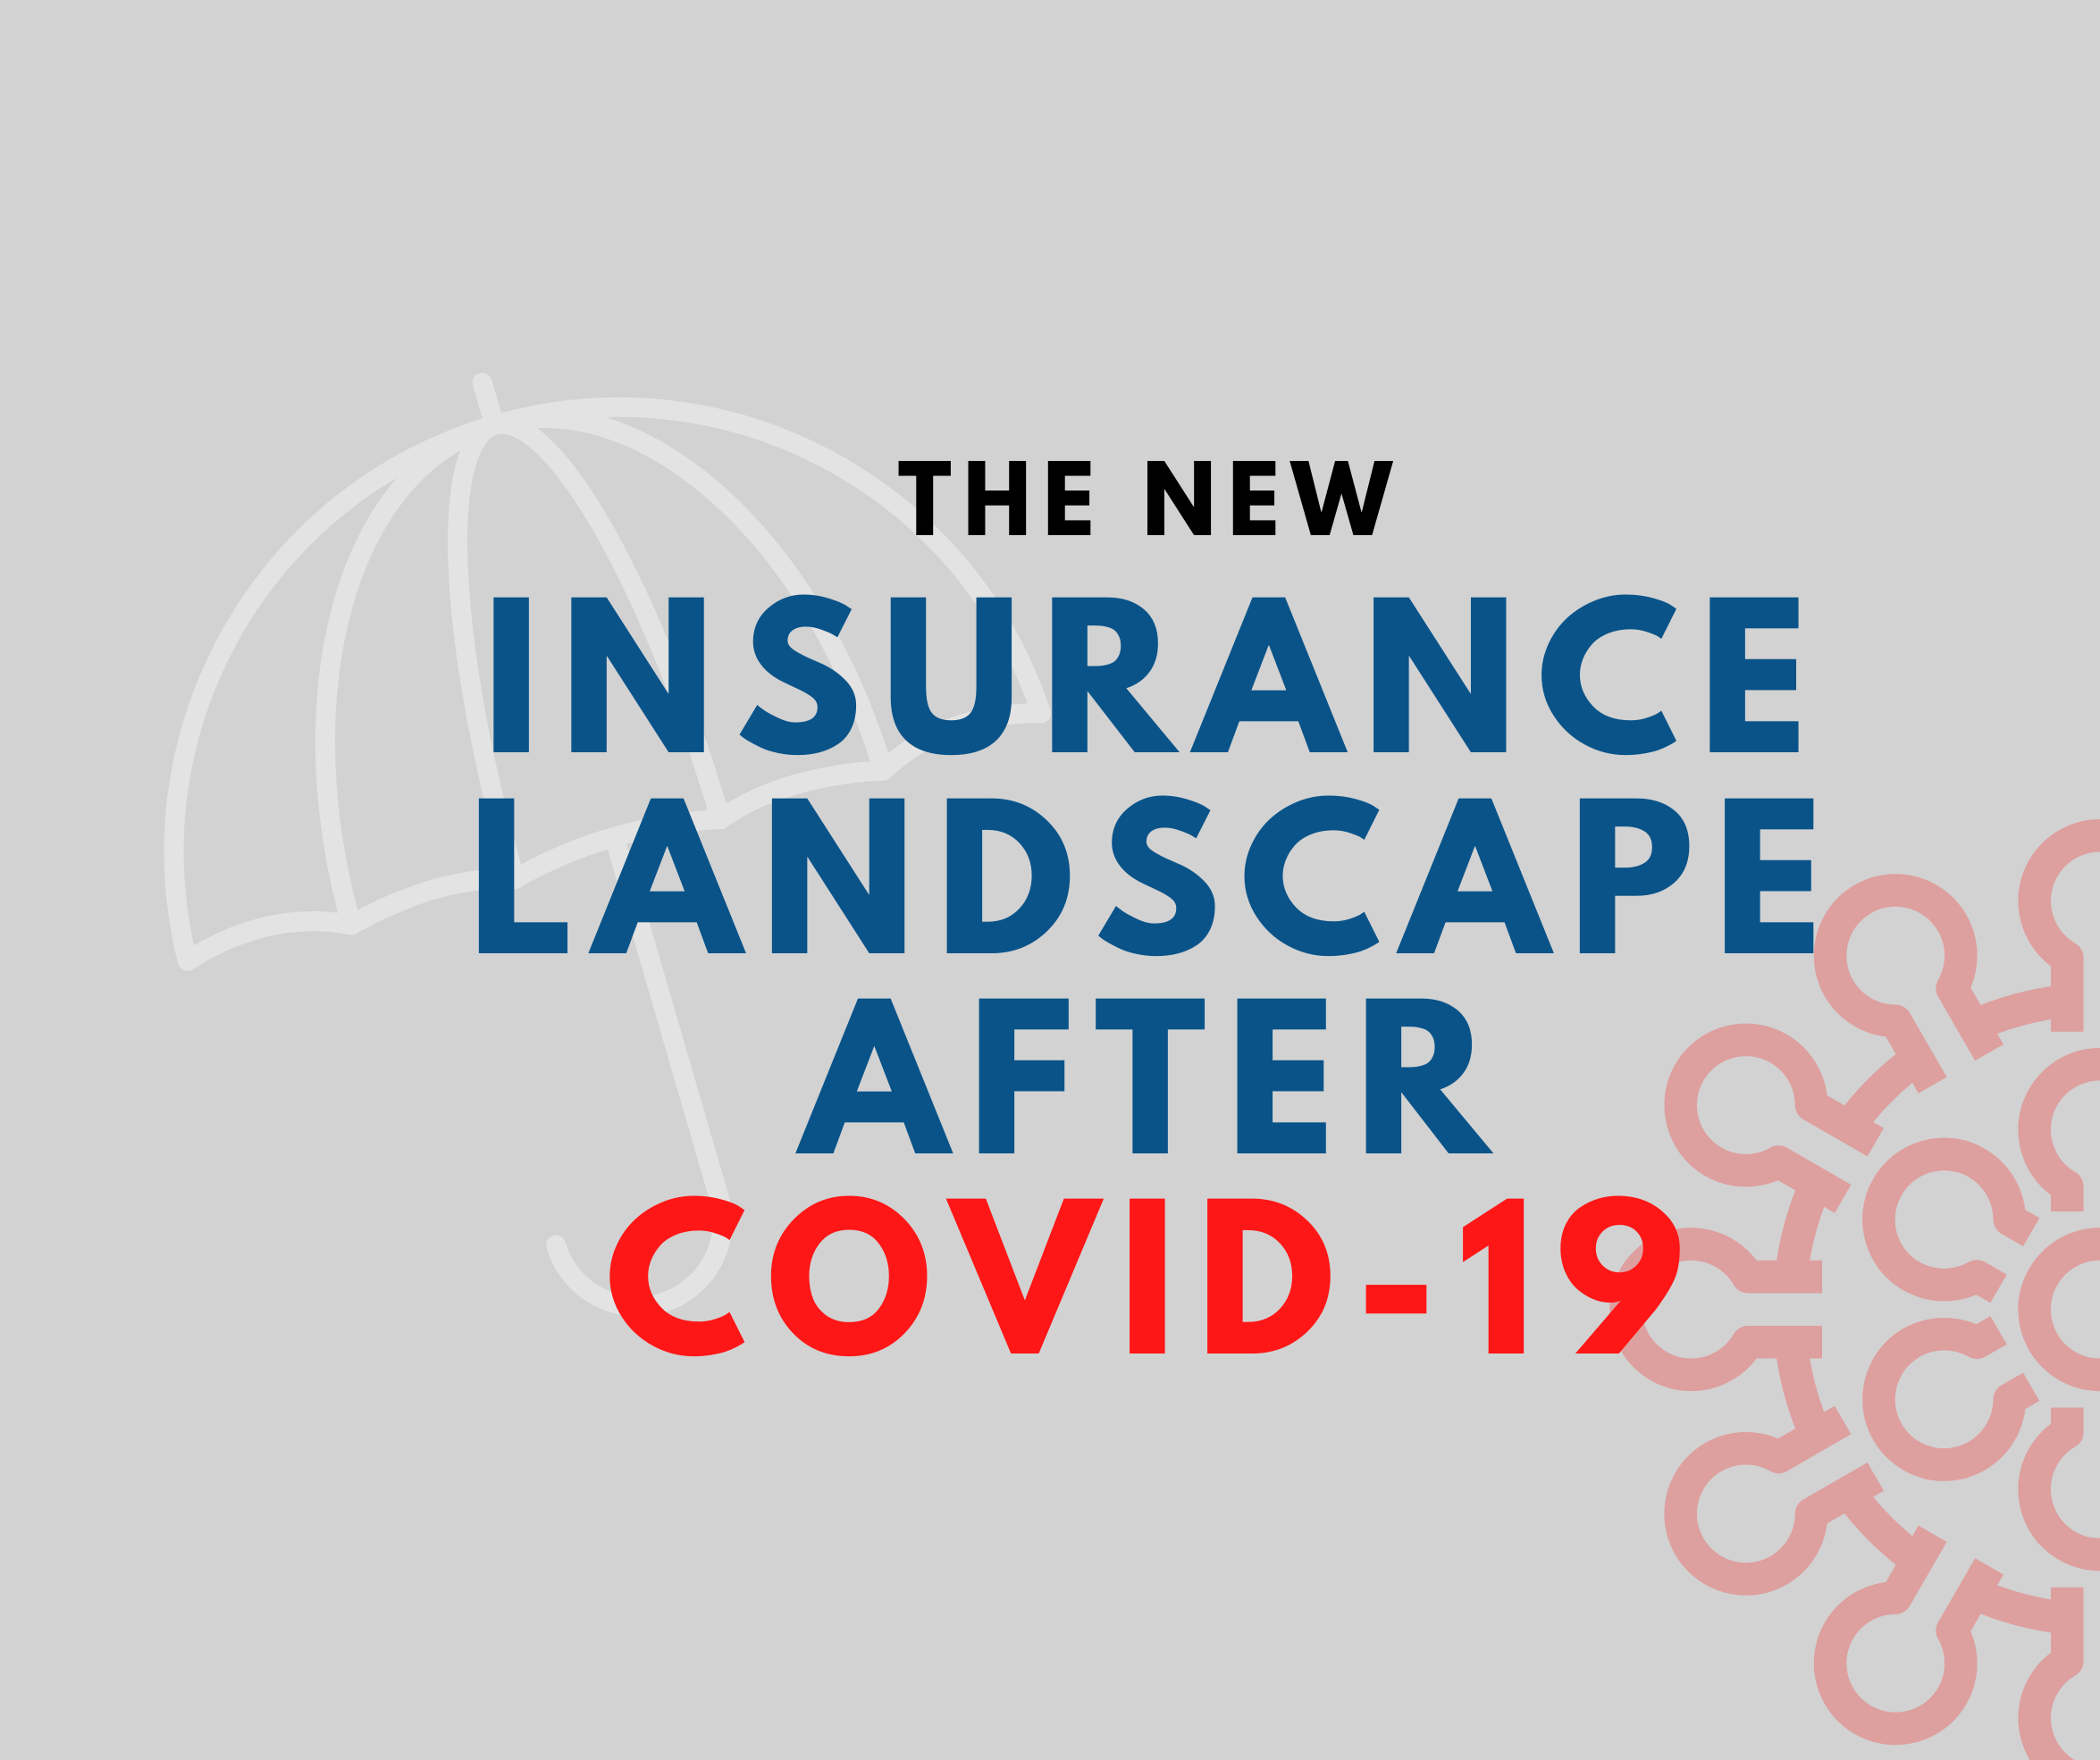 The New Insurance Landscape After COVID-19 | Pyramid Solutions